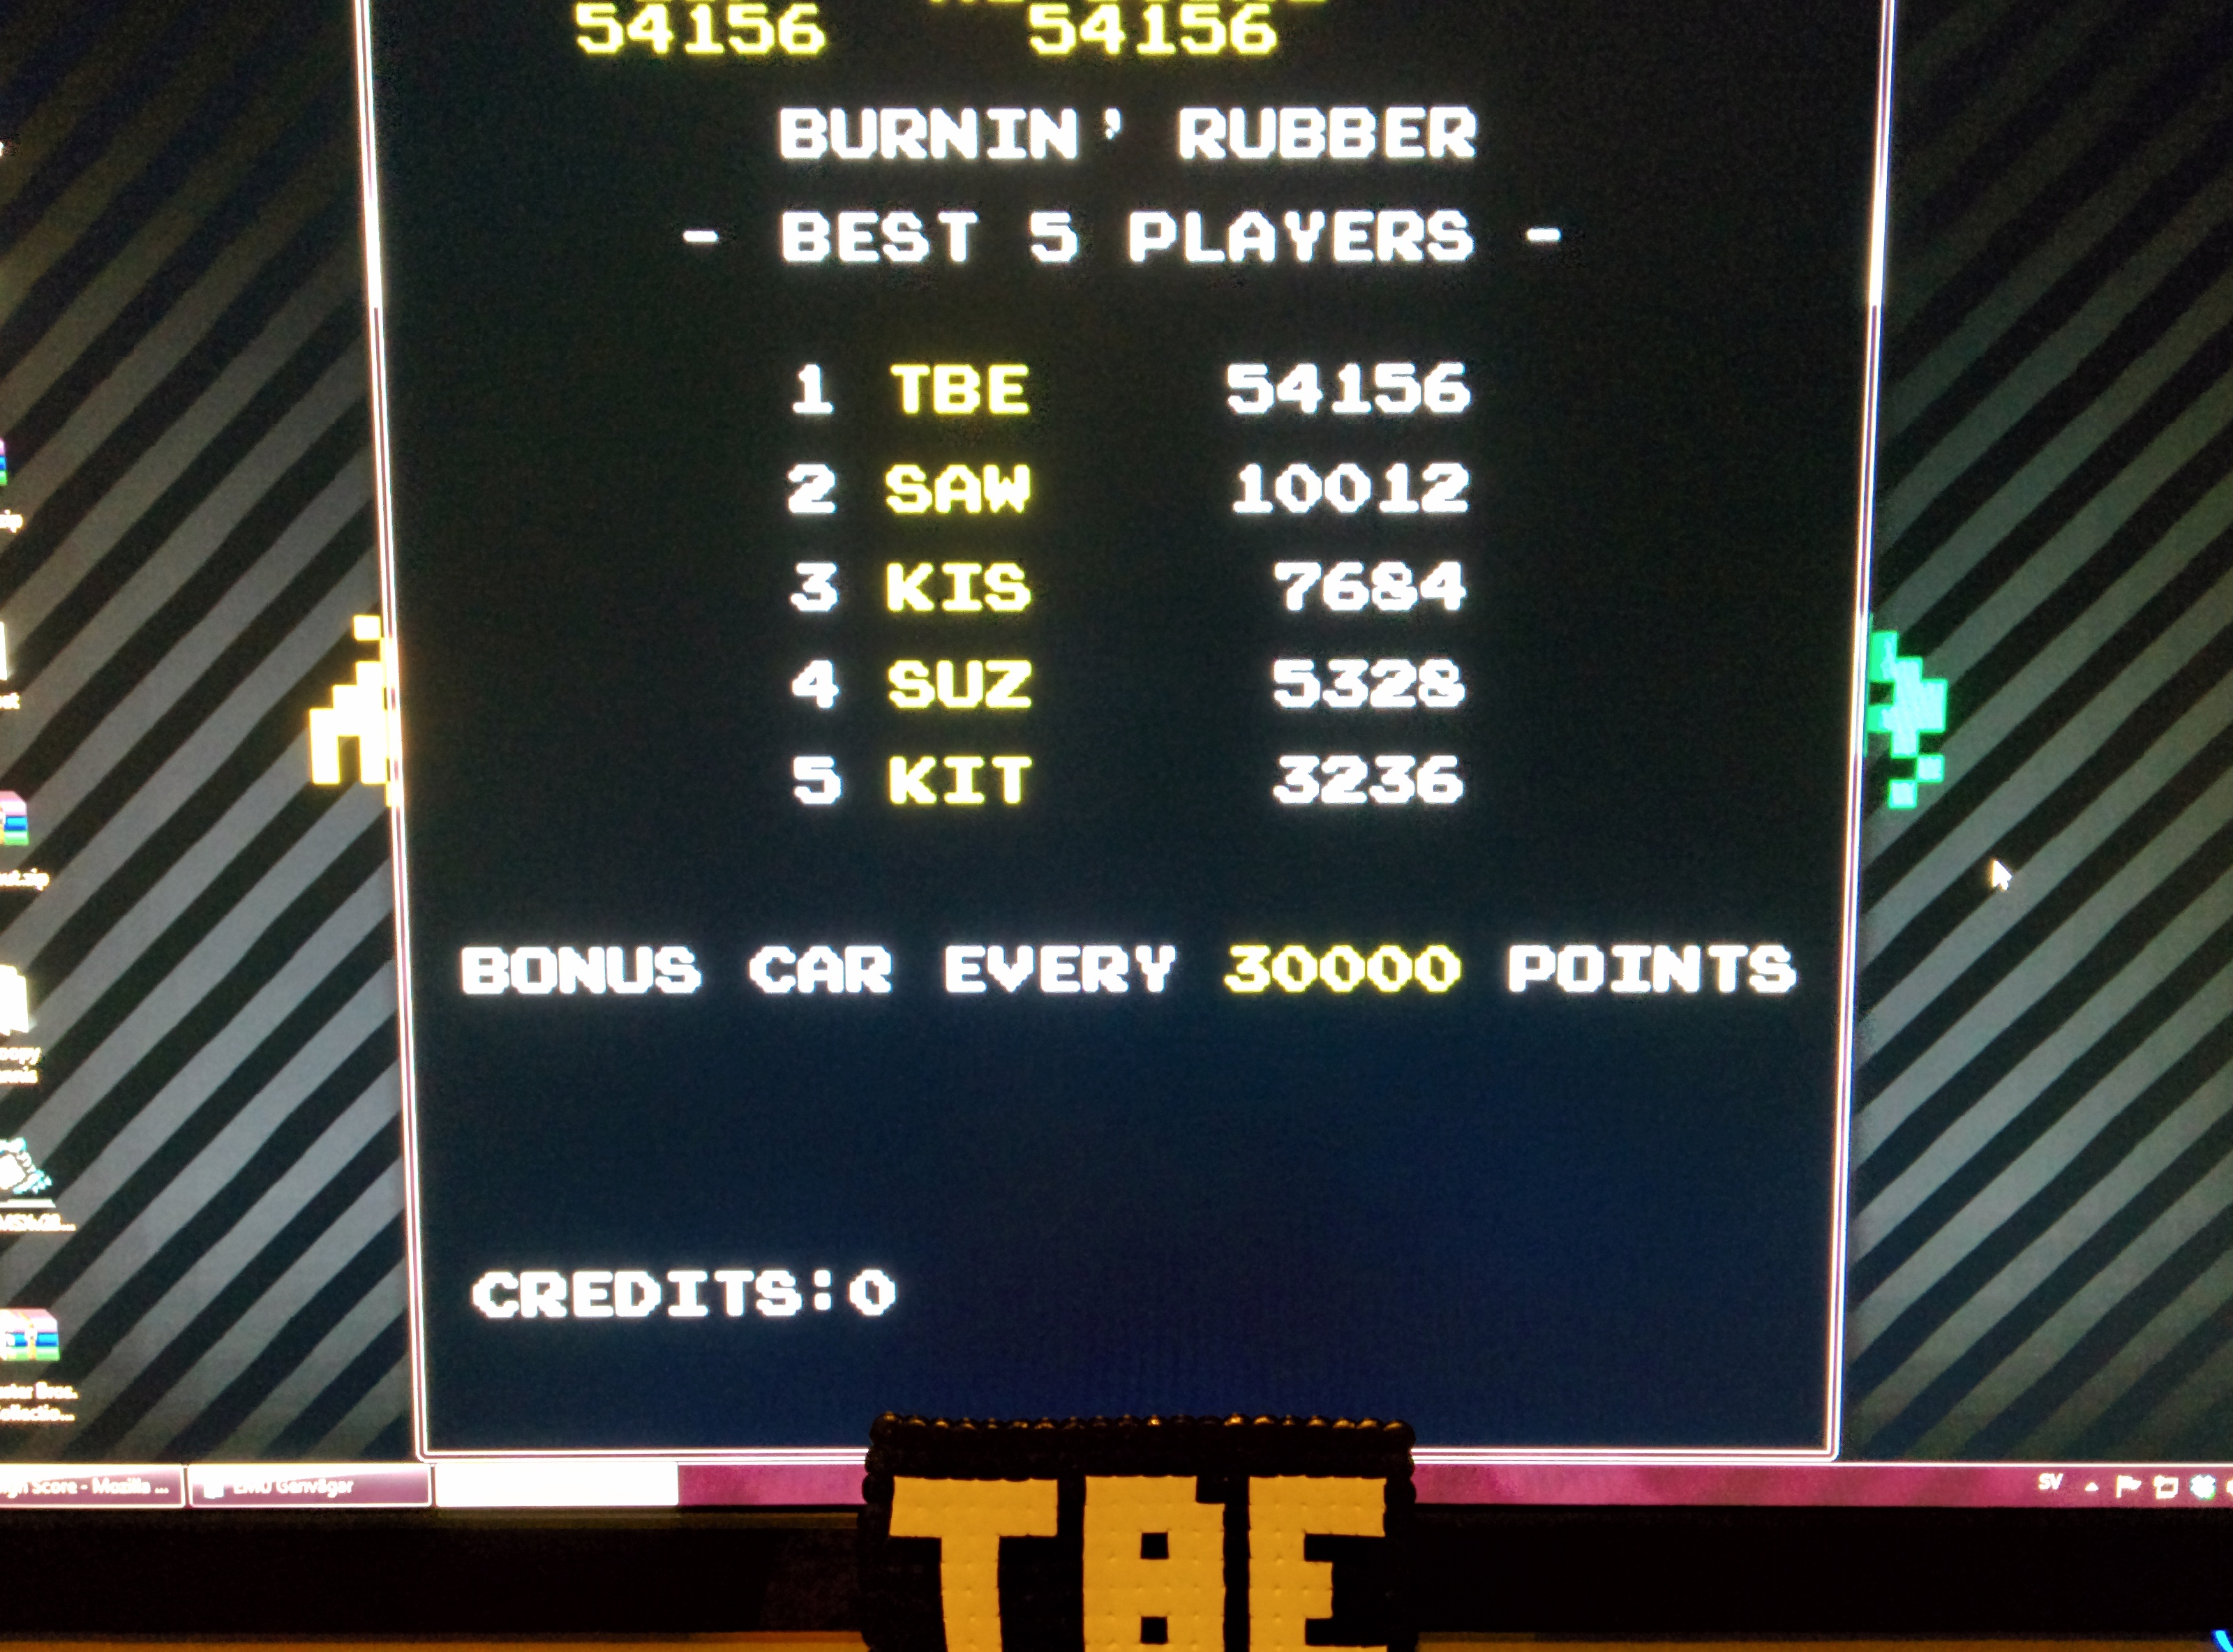 Sixx: Burning Rubber (Arcade Emulated / M.A.M.E.) 54,156 points on 2014-08-15 15:47:06